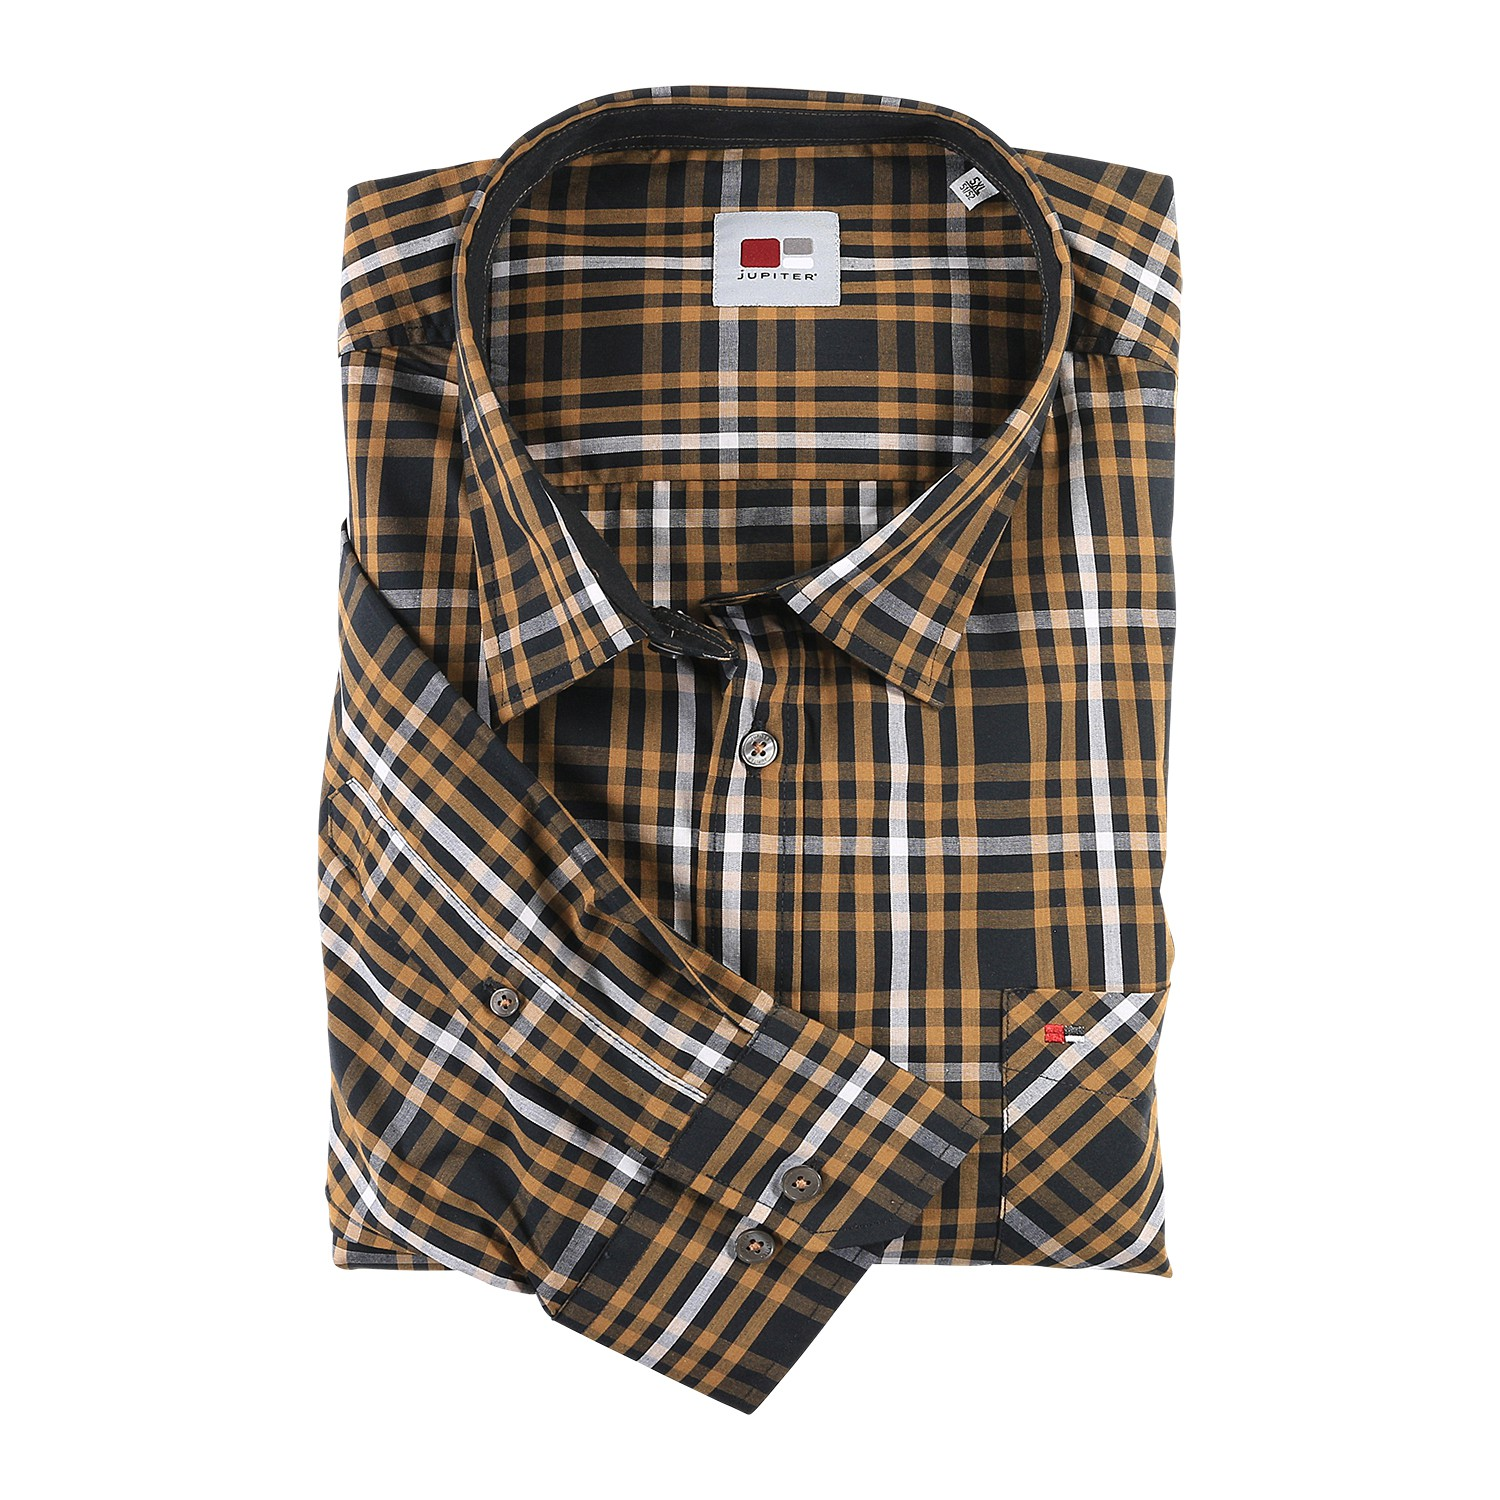 Detail Image to Shirt by Jupiter, checkered up to 7XL